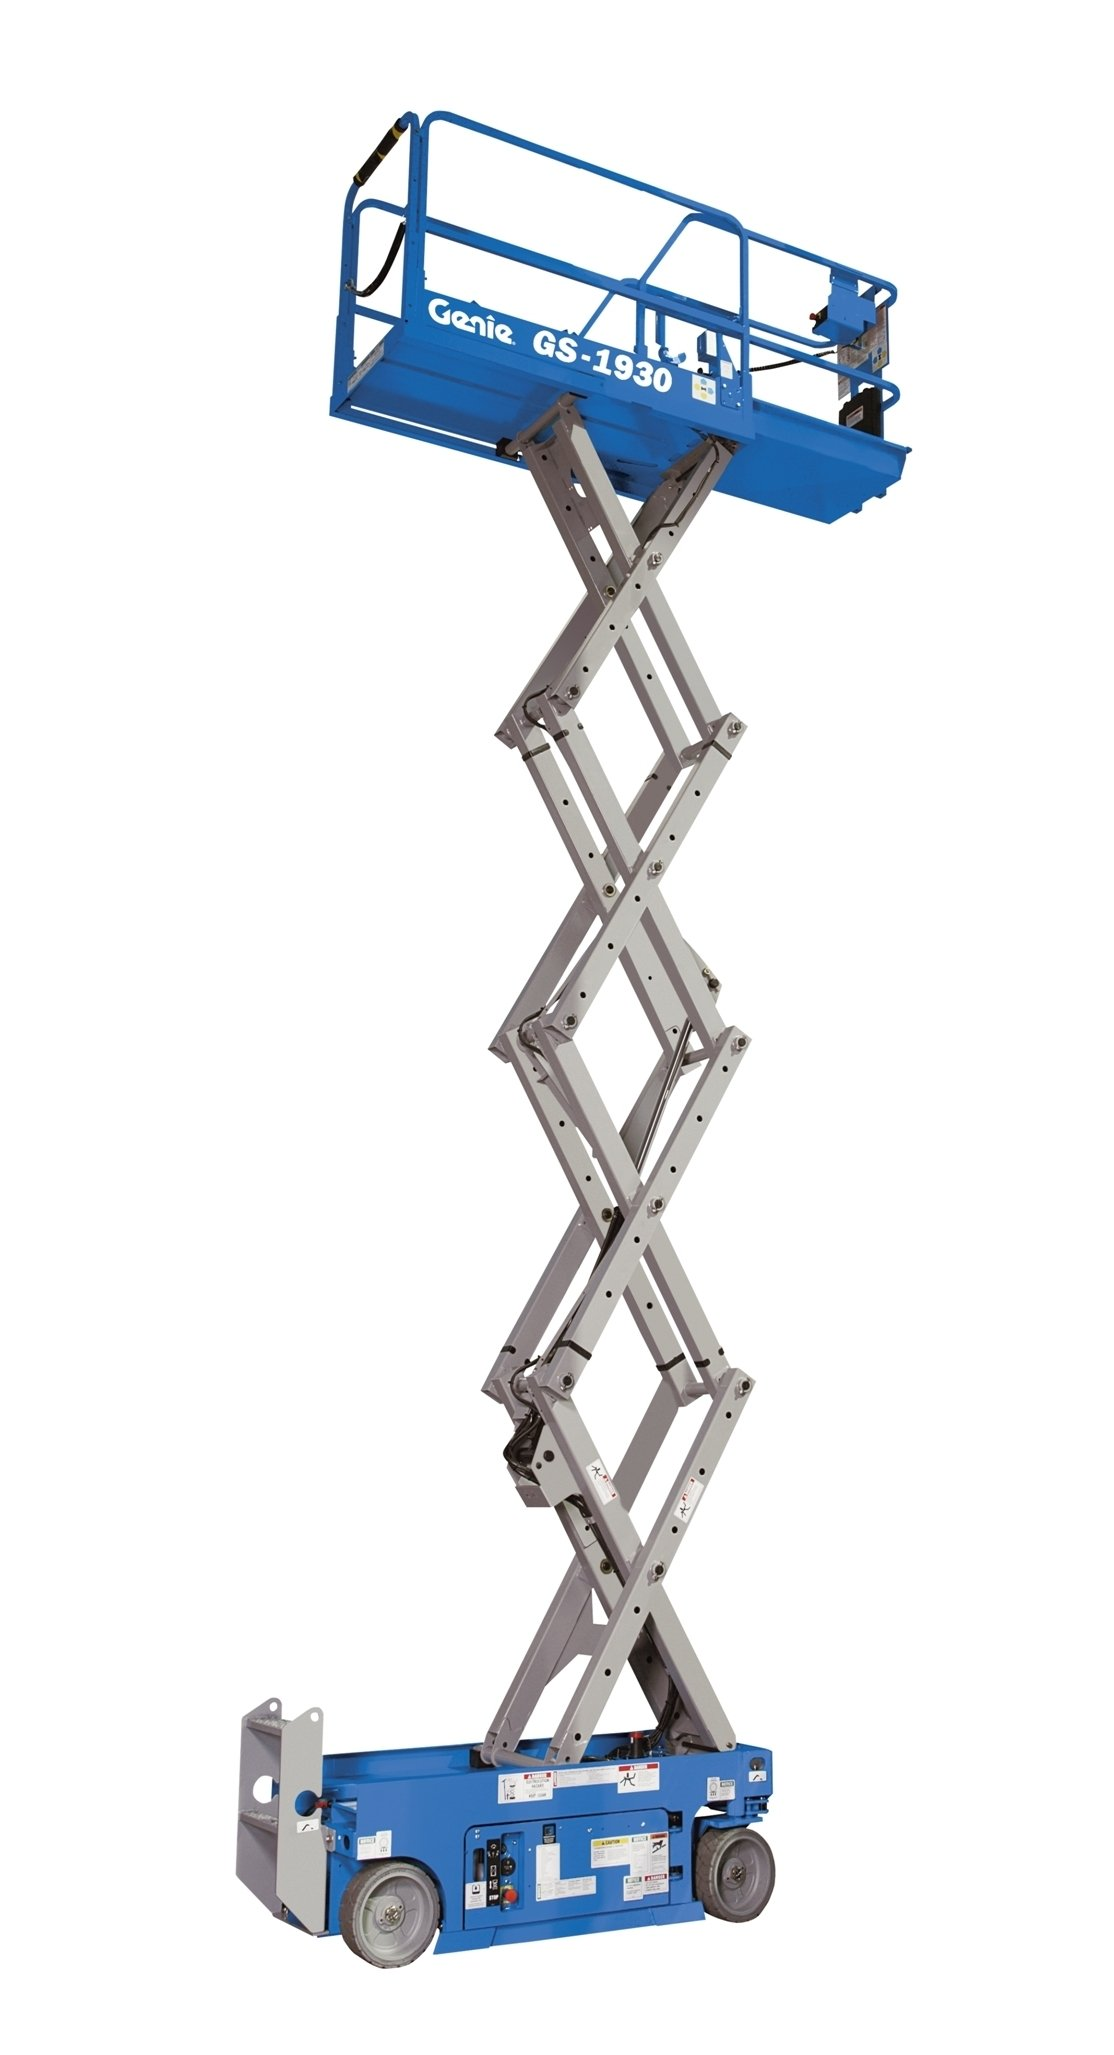 Genie GS-1930 Self-Propelled Electric Scissor Lift, 500 lbs Platform Load Capacity, 19' Lift Height